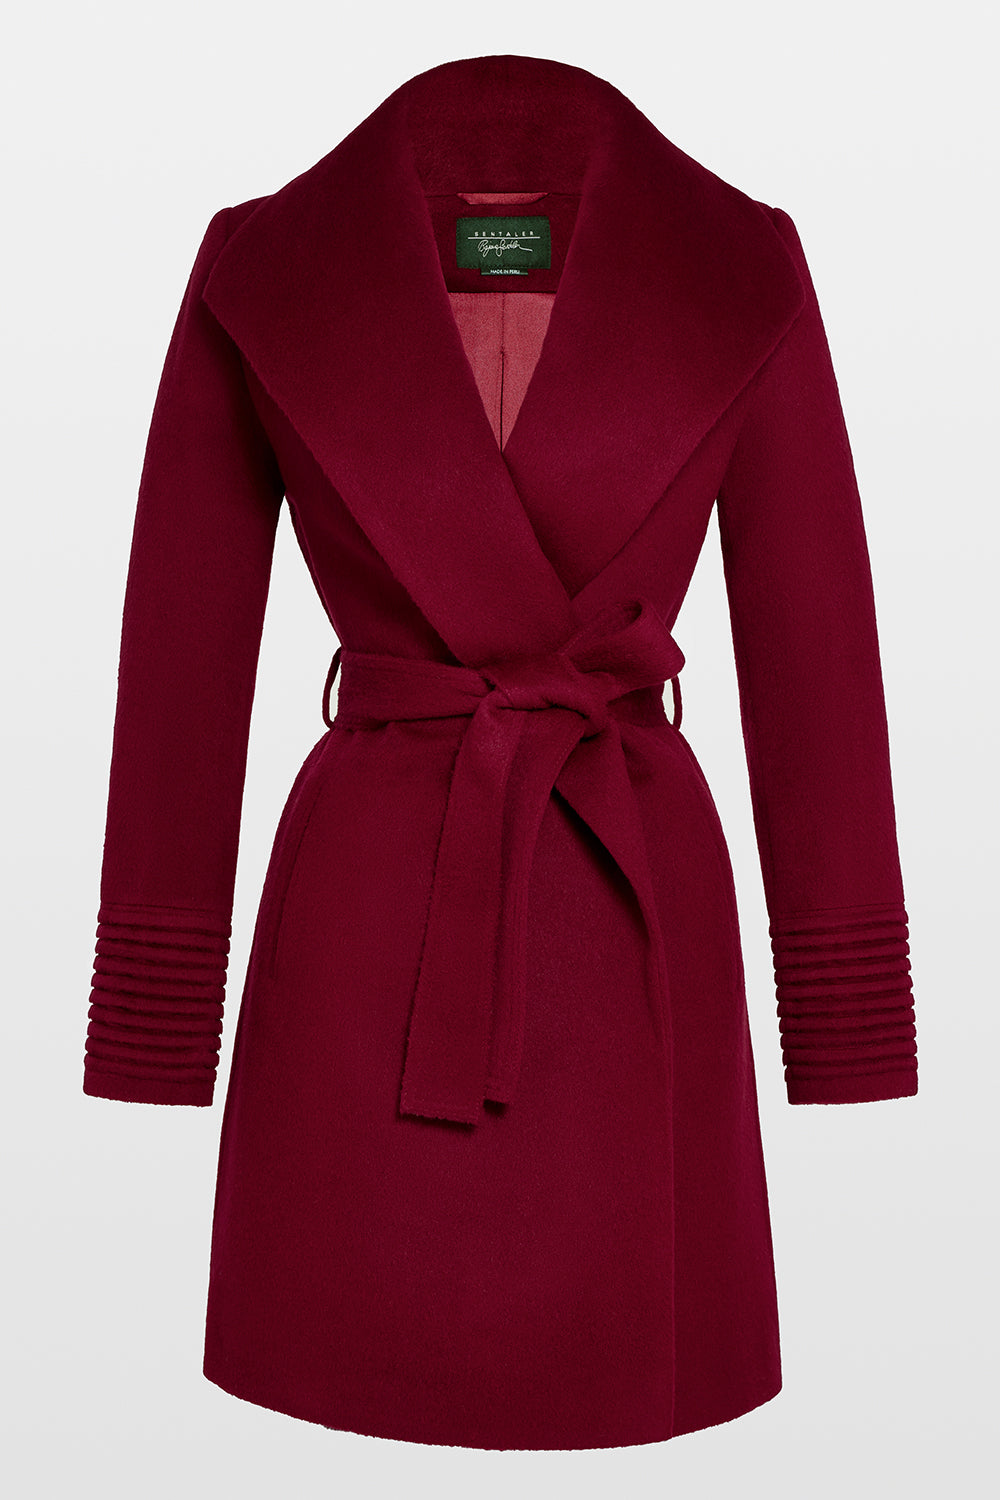 Sentaler Mid Length Shawl Collar Wrap Coat featured in Baby Alpaca and available in Garnet Red. Seen off model.